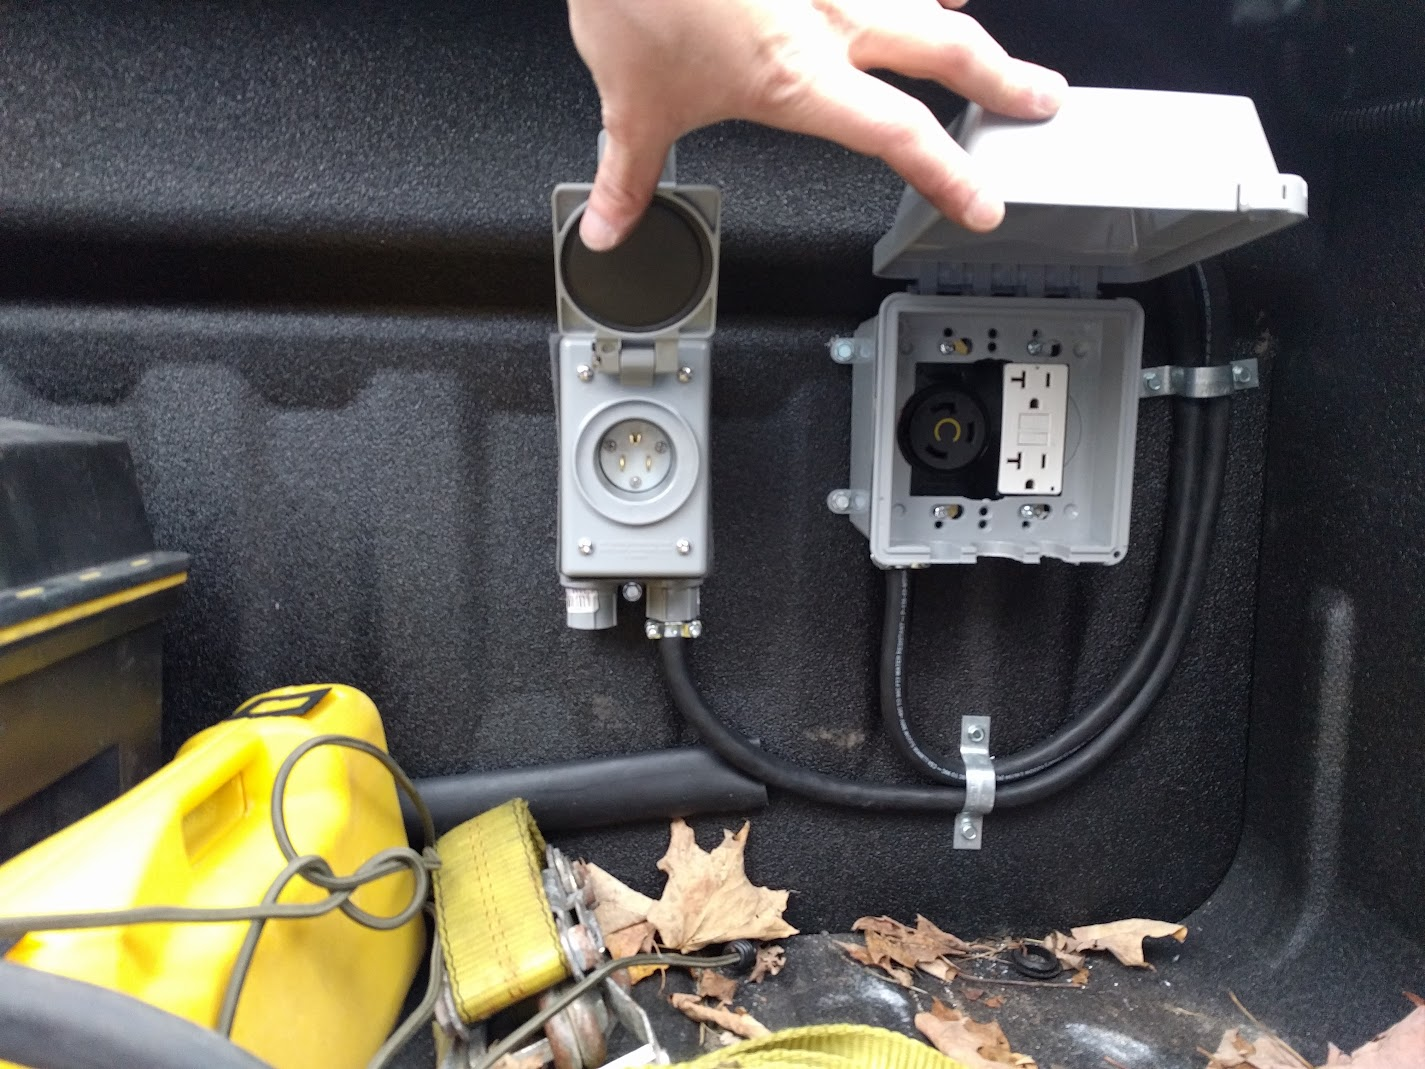 2017 Silverado Hd Large Inverter 3kw Install Chevy And Gmc Pickup Truck Suburban Undercover Battery Kill Switch Wiring Ebay Update The Looks A Lot Cleaner With These Maxliner Floor Mats Covering Cables Routed Under Back Seat